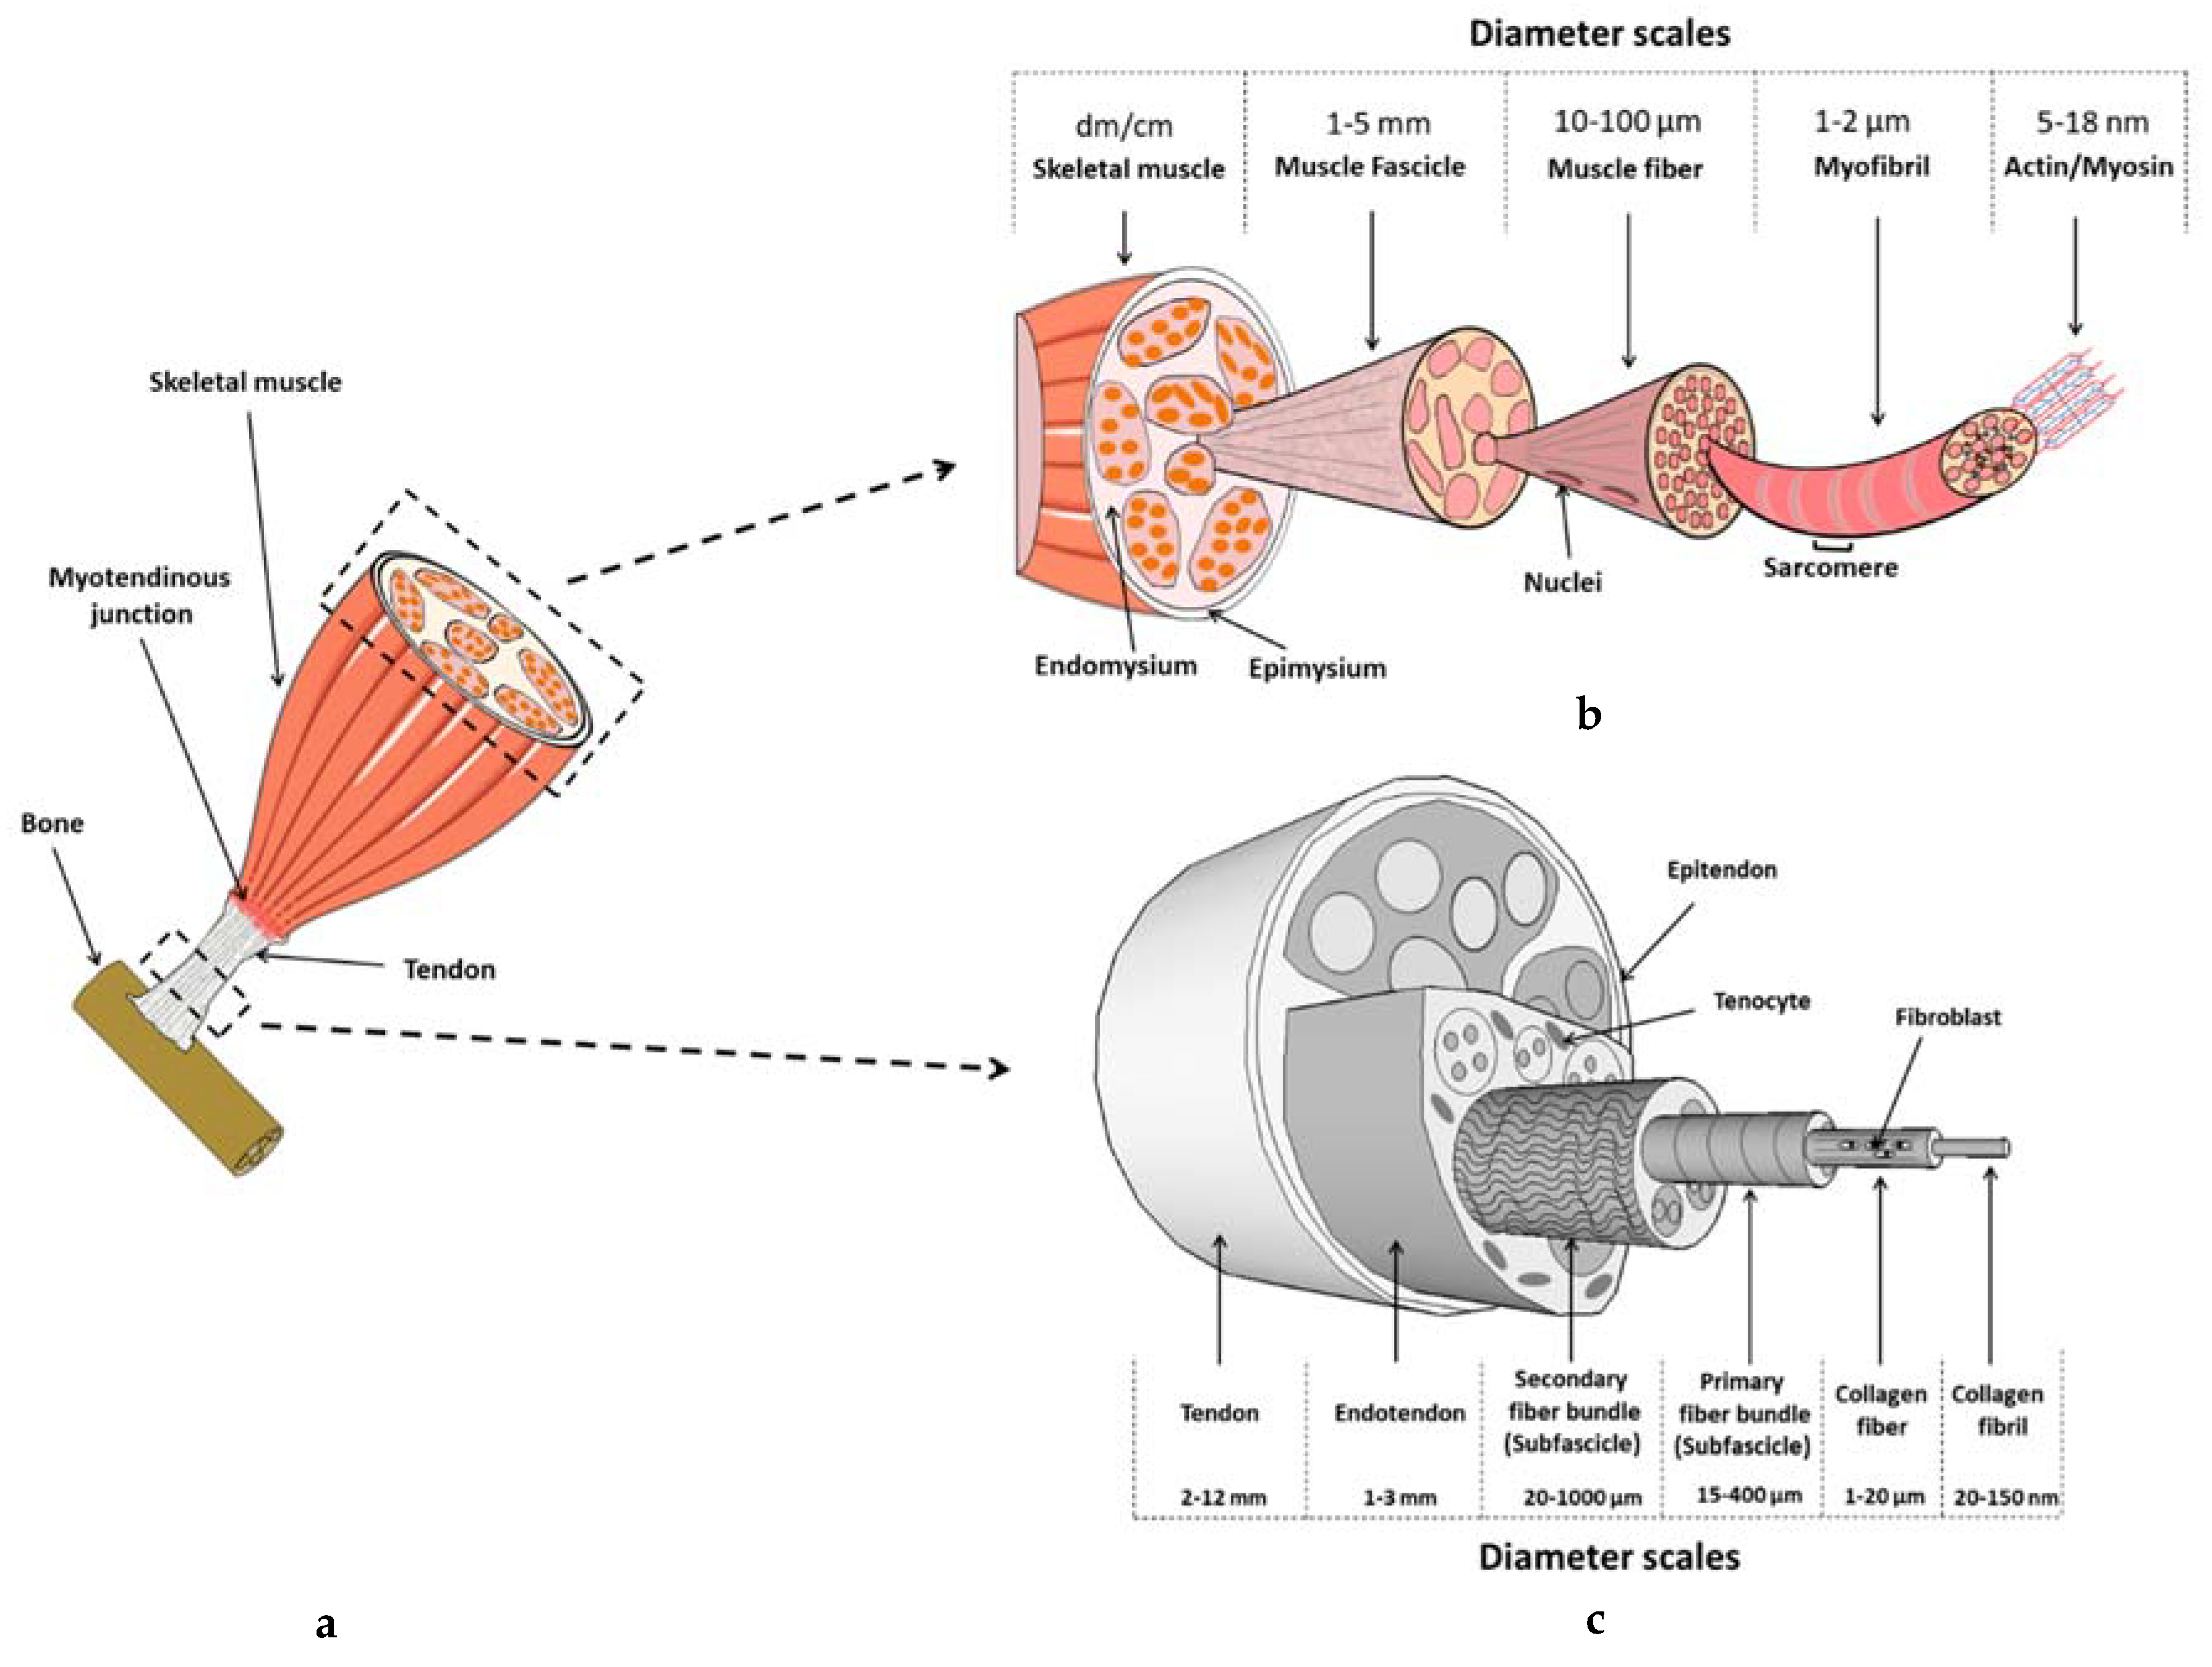 materials | free full-text | biomaterials in tendon and skeletal